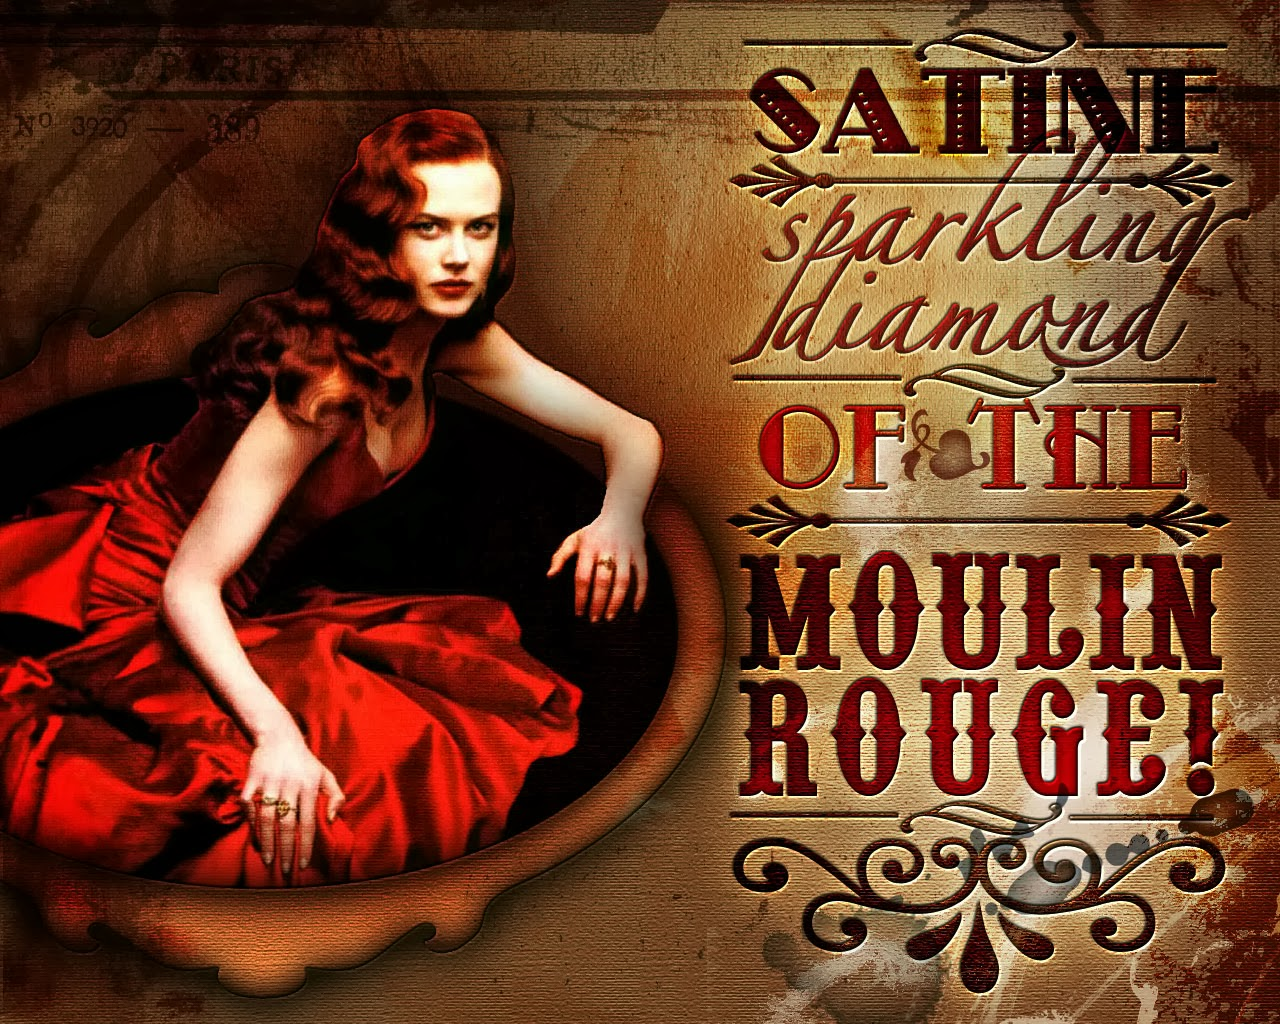 Moulin Rouge Lyrics